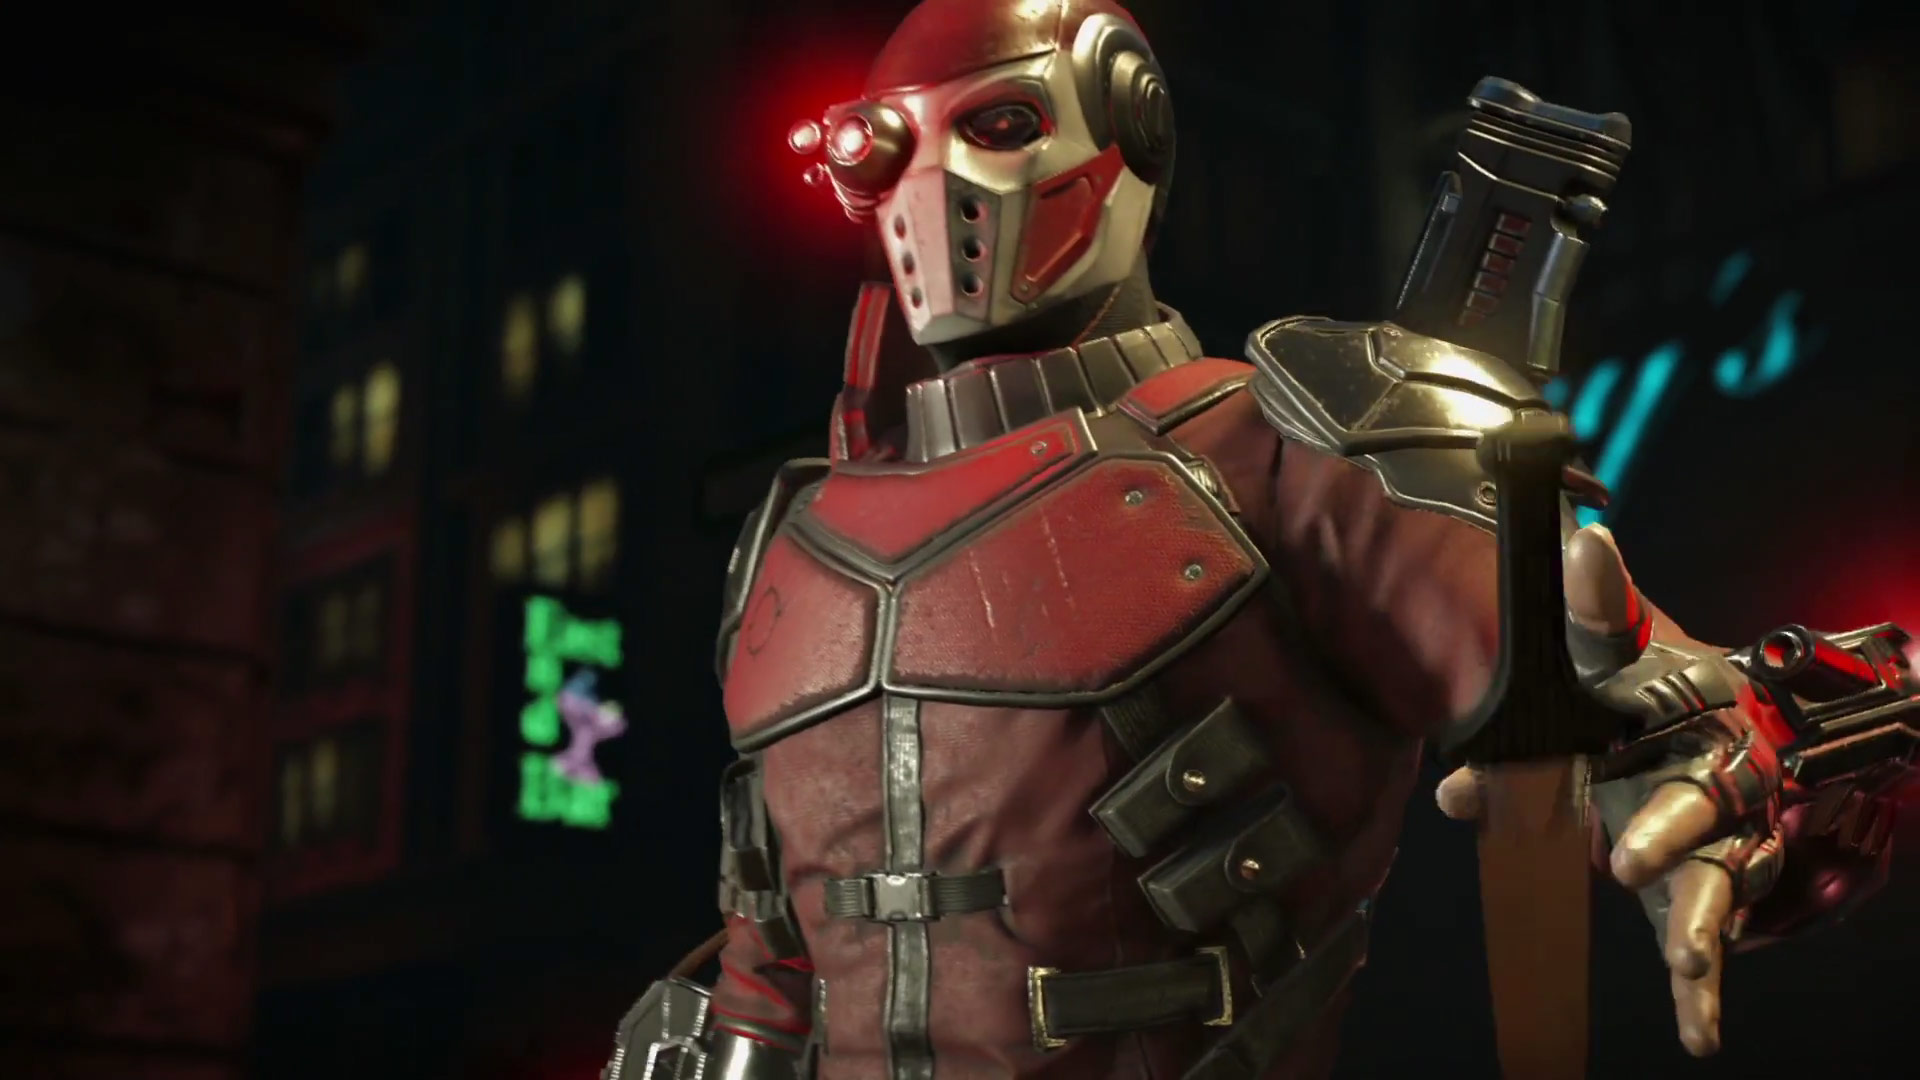 Injustice 2 Harley Quinn And Deadshot Reveal Gallery 4 Out Of 6 Image